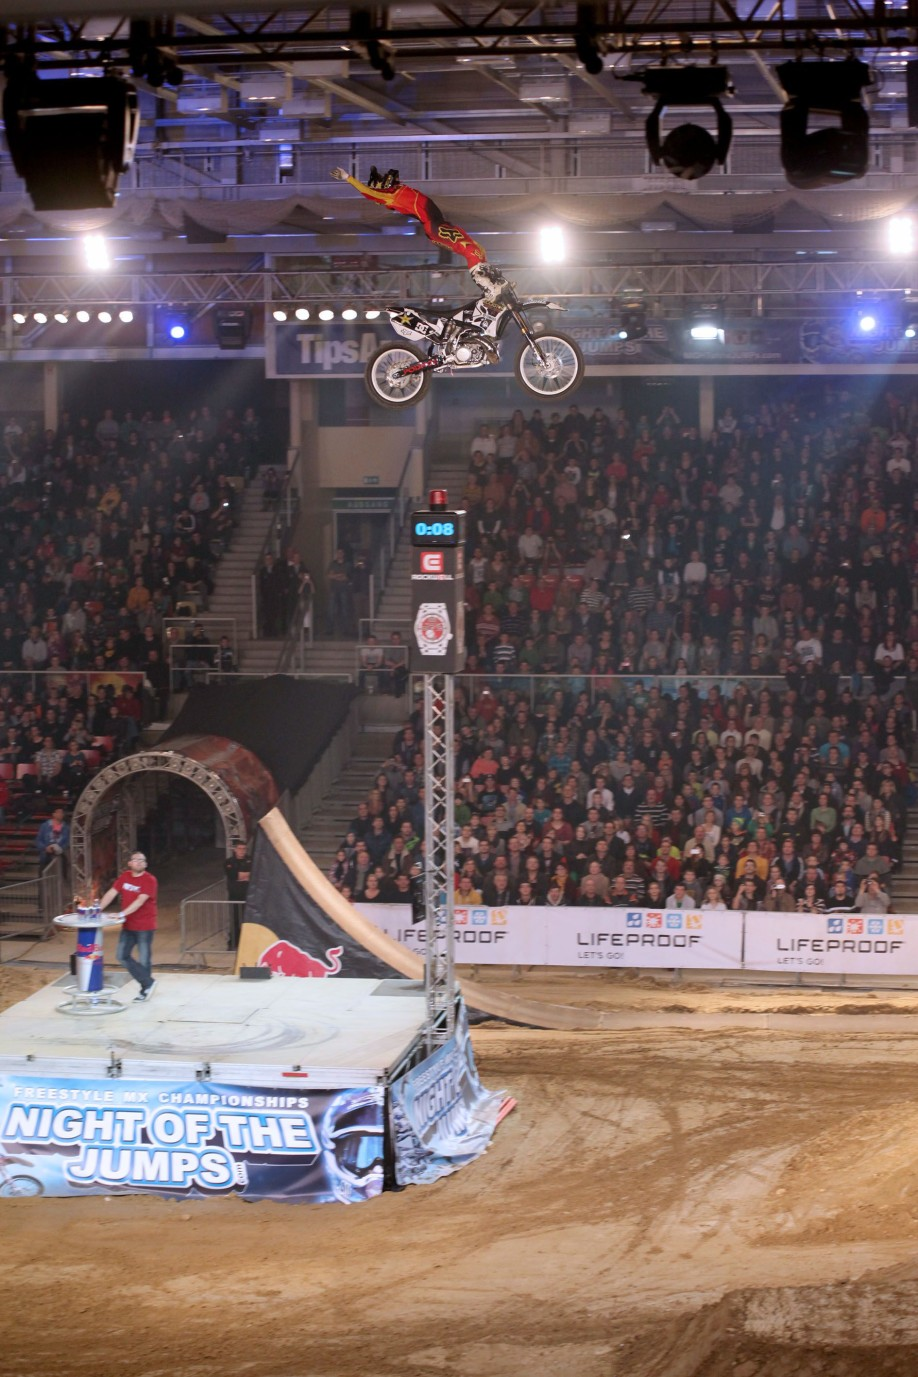 Libor Podmol - NIGHT of the JUMPs Linz 2014